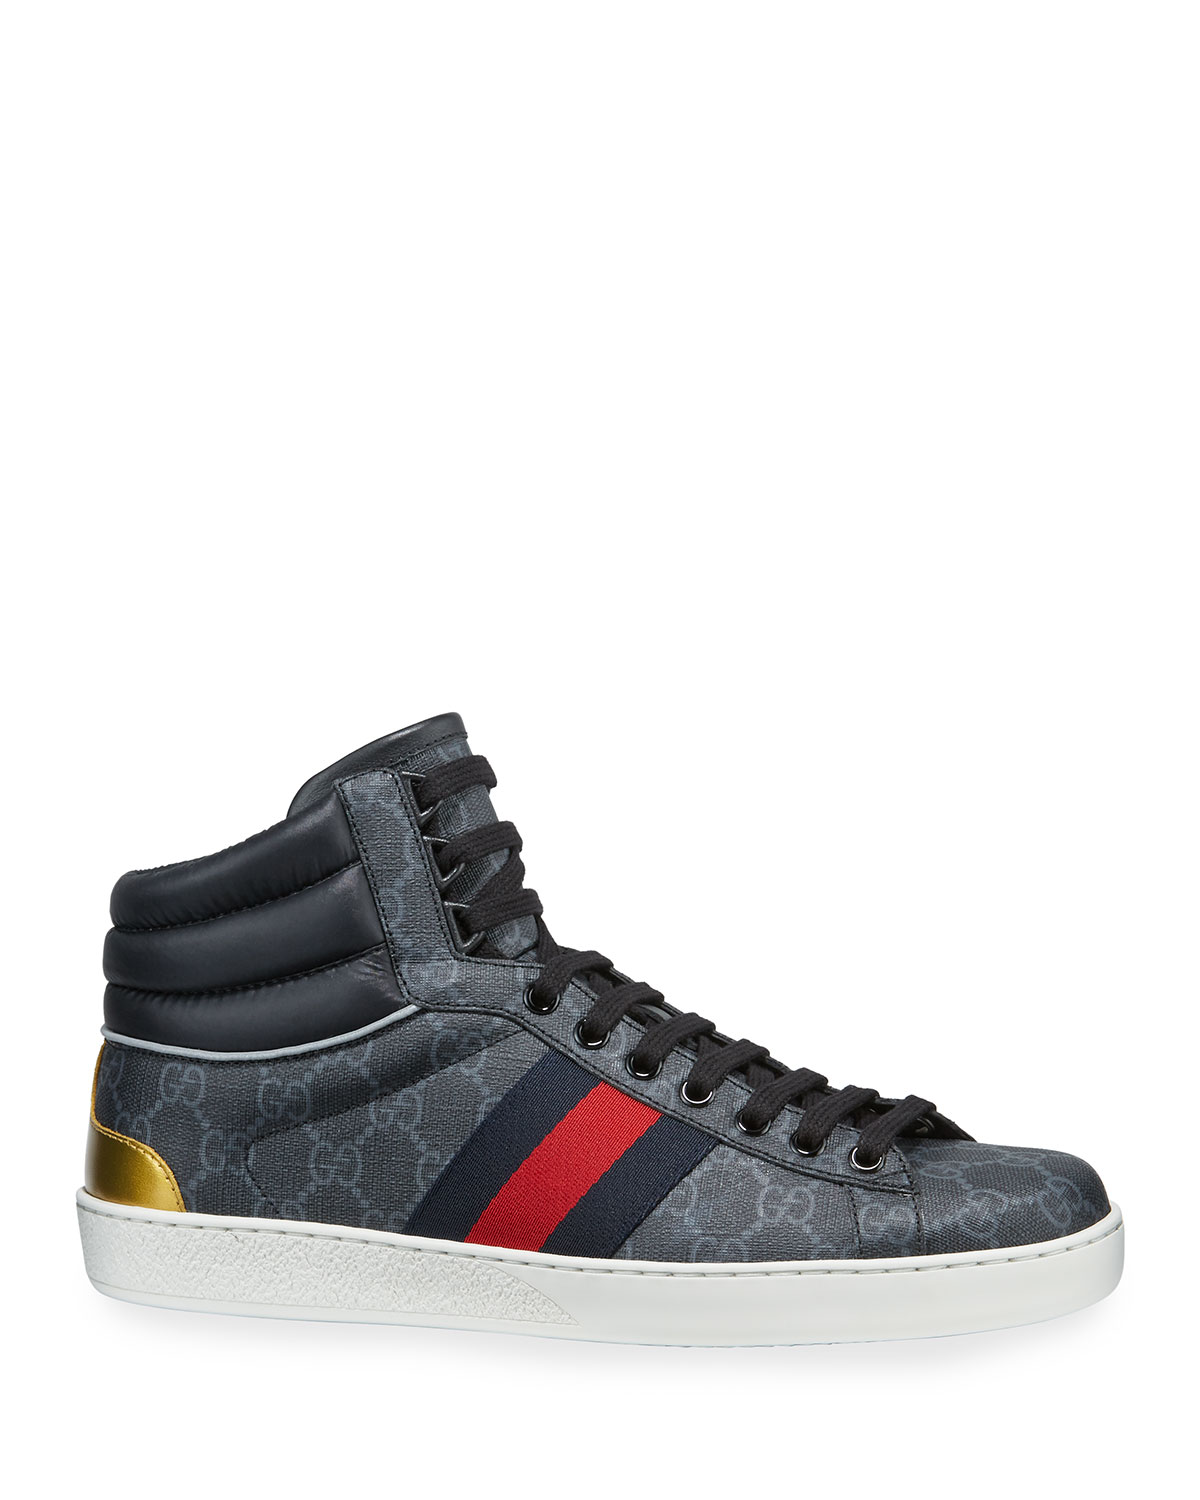 c27614bc8c02b Gucci Men s Ace GG Canvas High-Top Sneakers